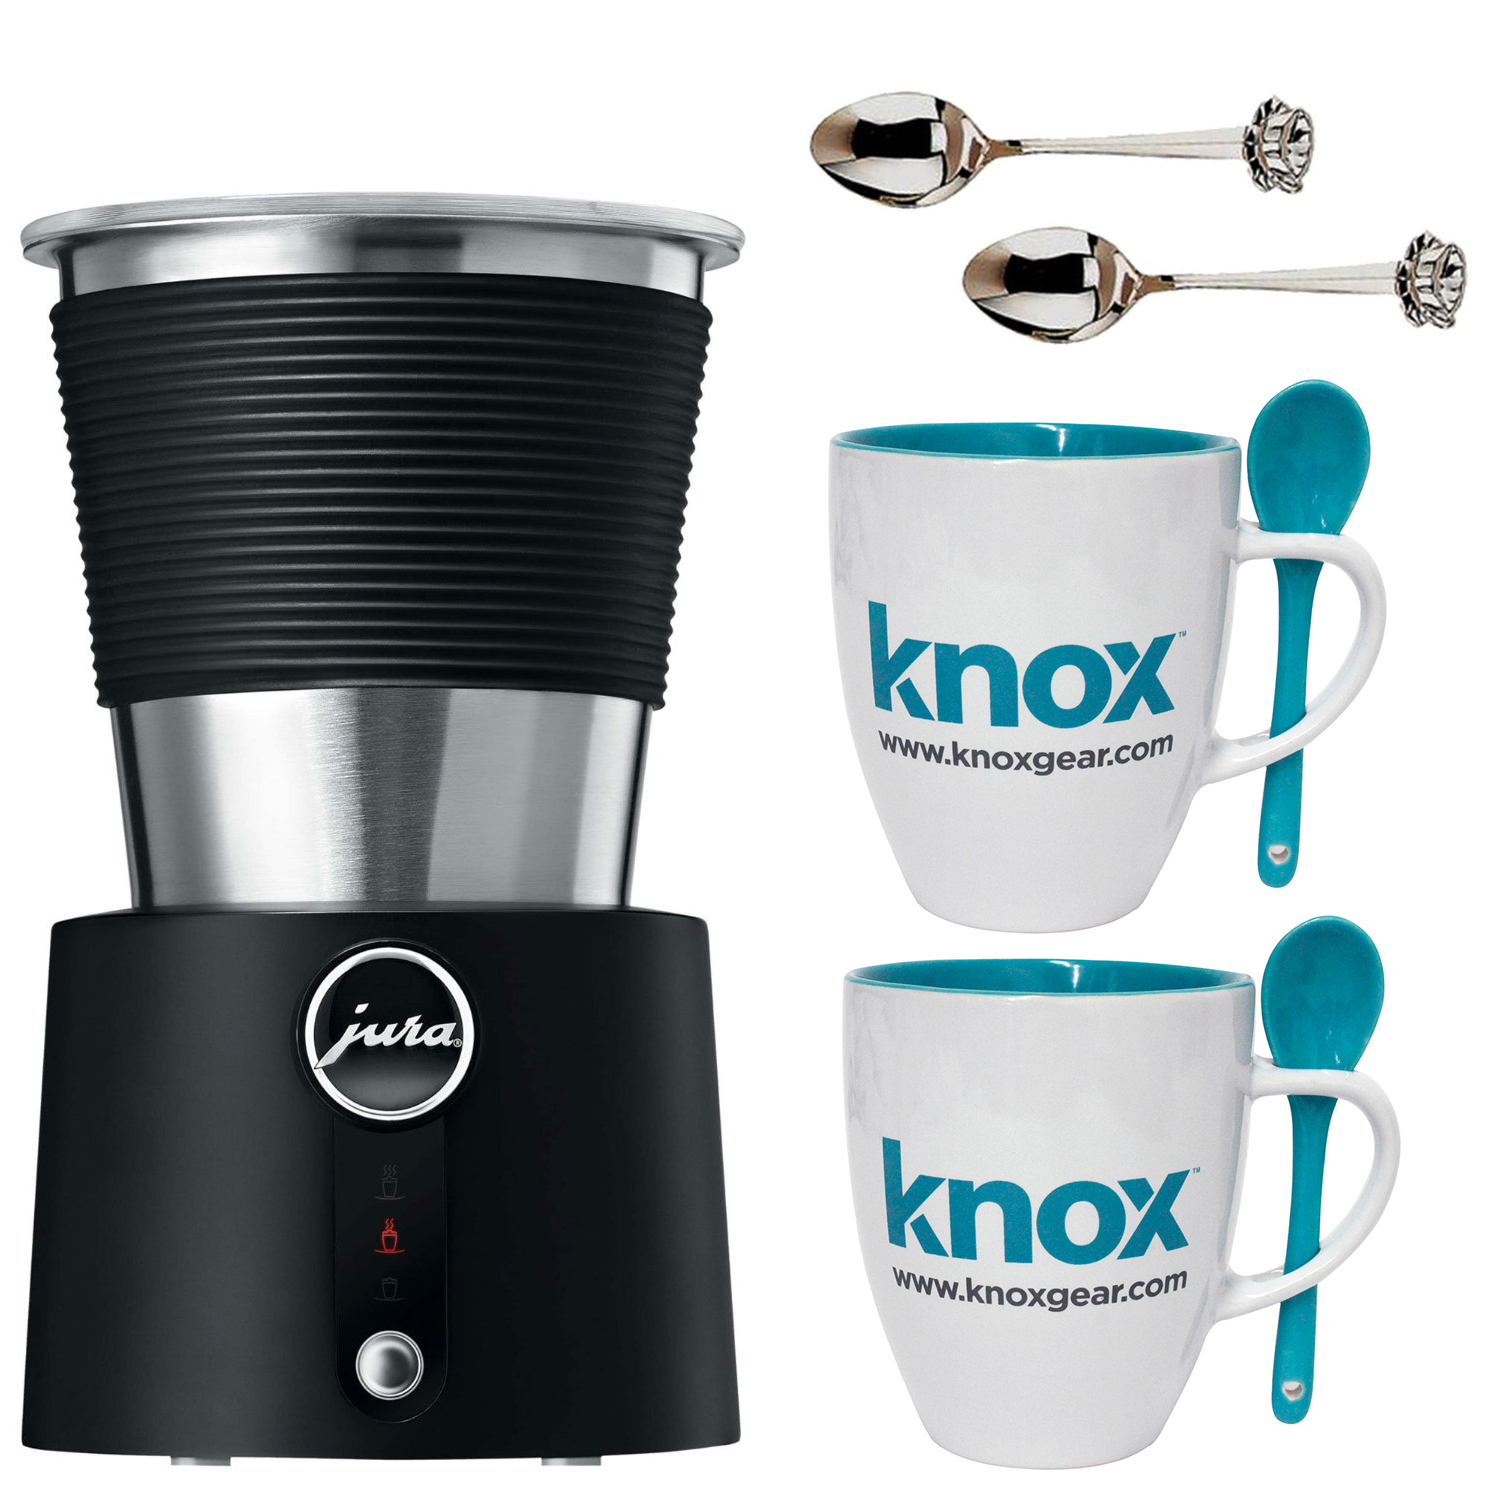 Jura Automatic Milk Frother with 2 pcs Glass Coffee mug & 2 pcs 4.5 inches spoon